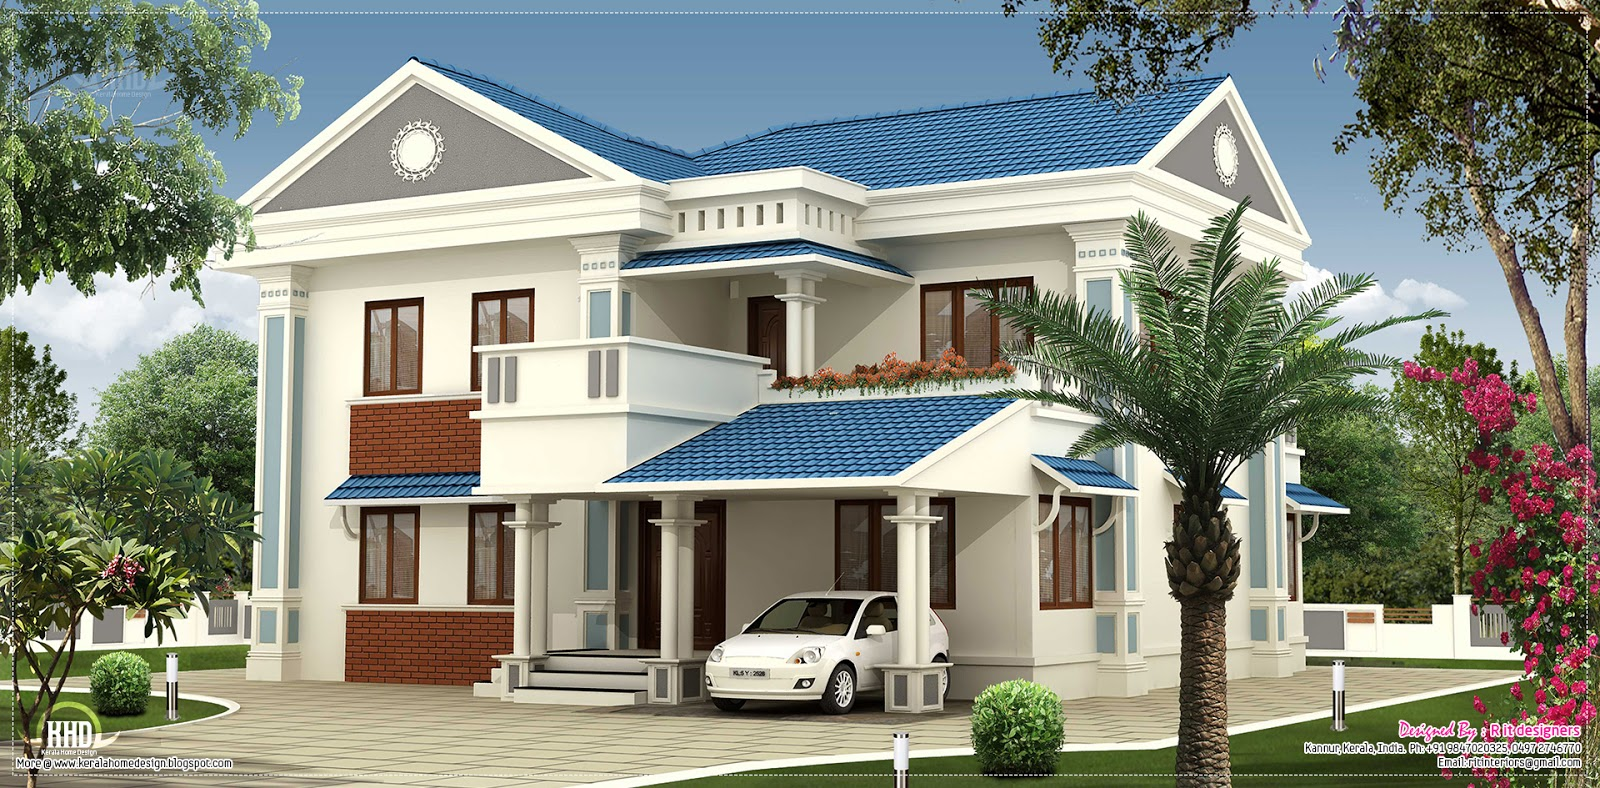 2000 beautiful villa elevation design home for Beautiful villa design